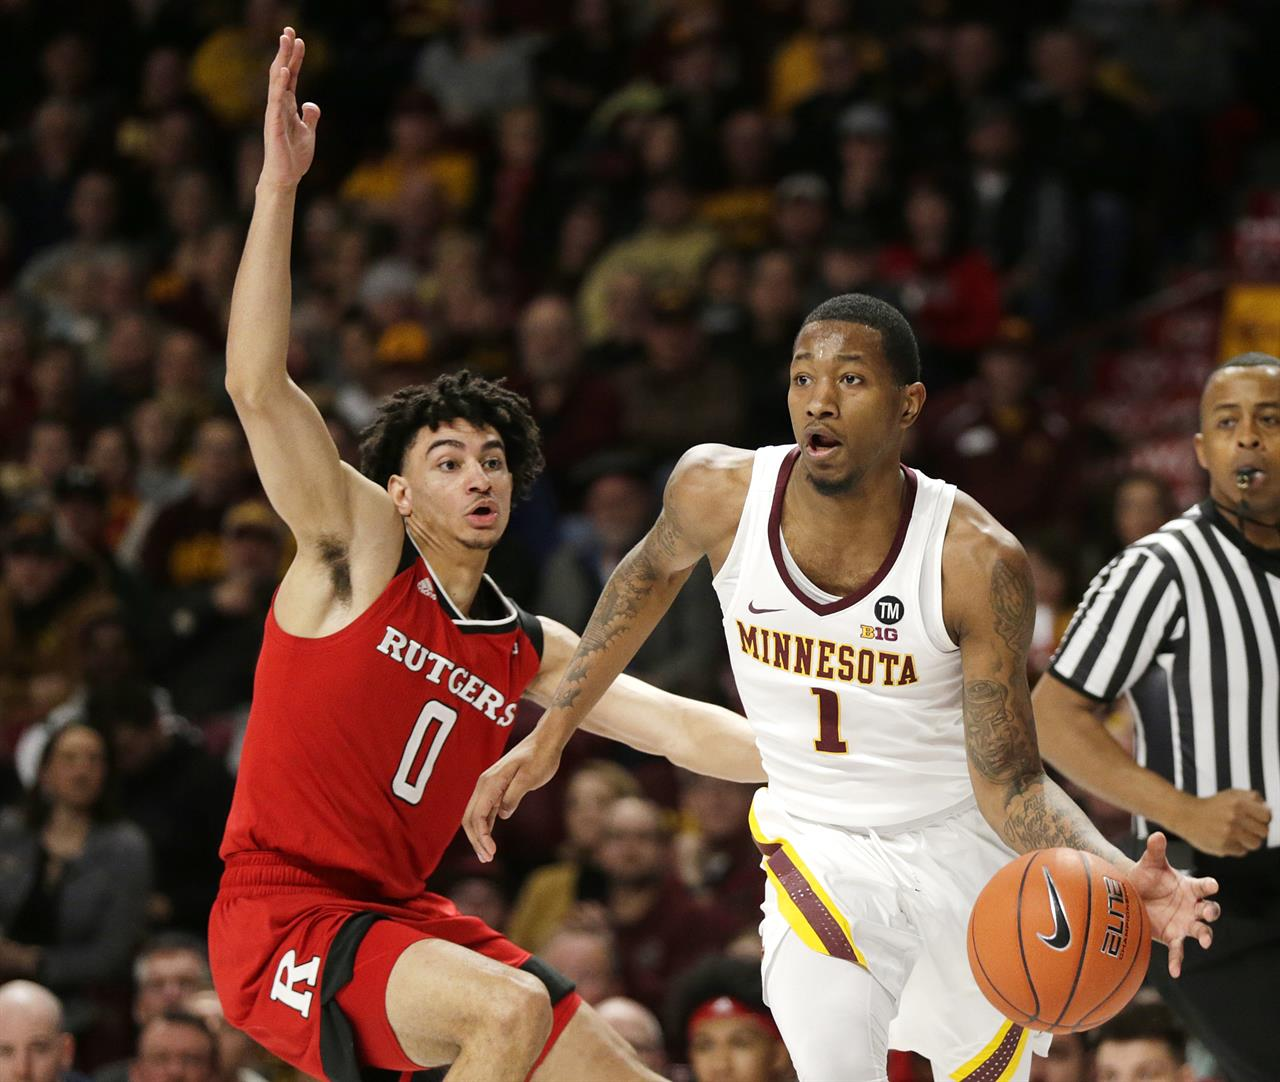 Coffey scores 29 as Gophers top Rutgers 88-70 | KDOW-AM